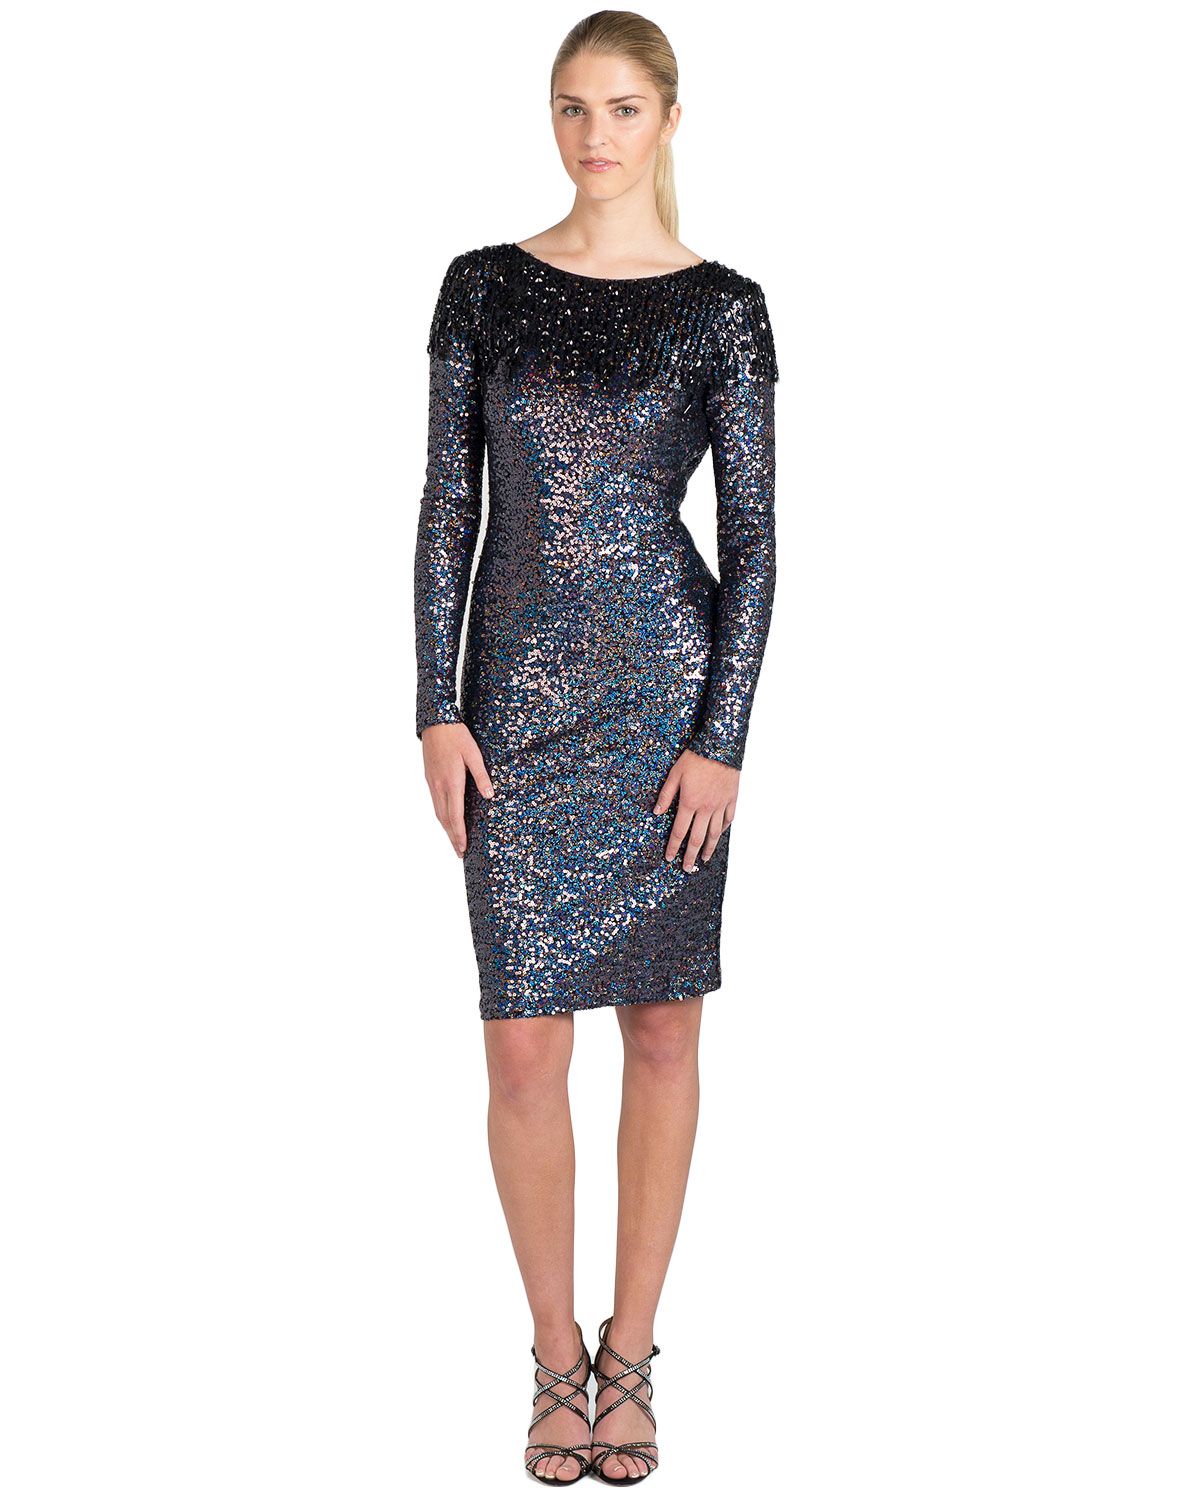 Boost Girl Wearing Yeezys furthermore Philipp Plein Dress Knit moreover Purple Sequin Cocktail Dress in addition LaLa Anthony Style likewise Rihanna Street Style 2015. on t by alexander wang black dress